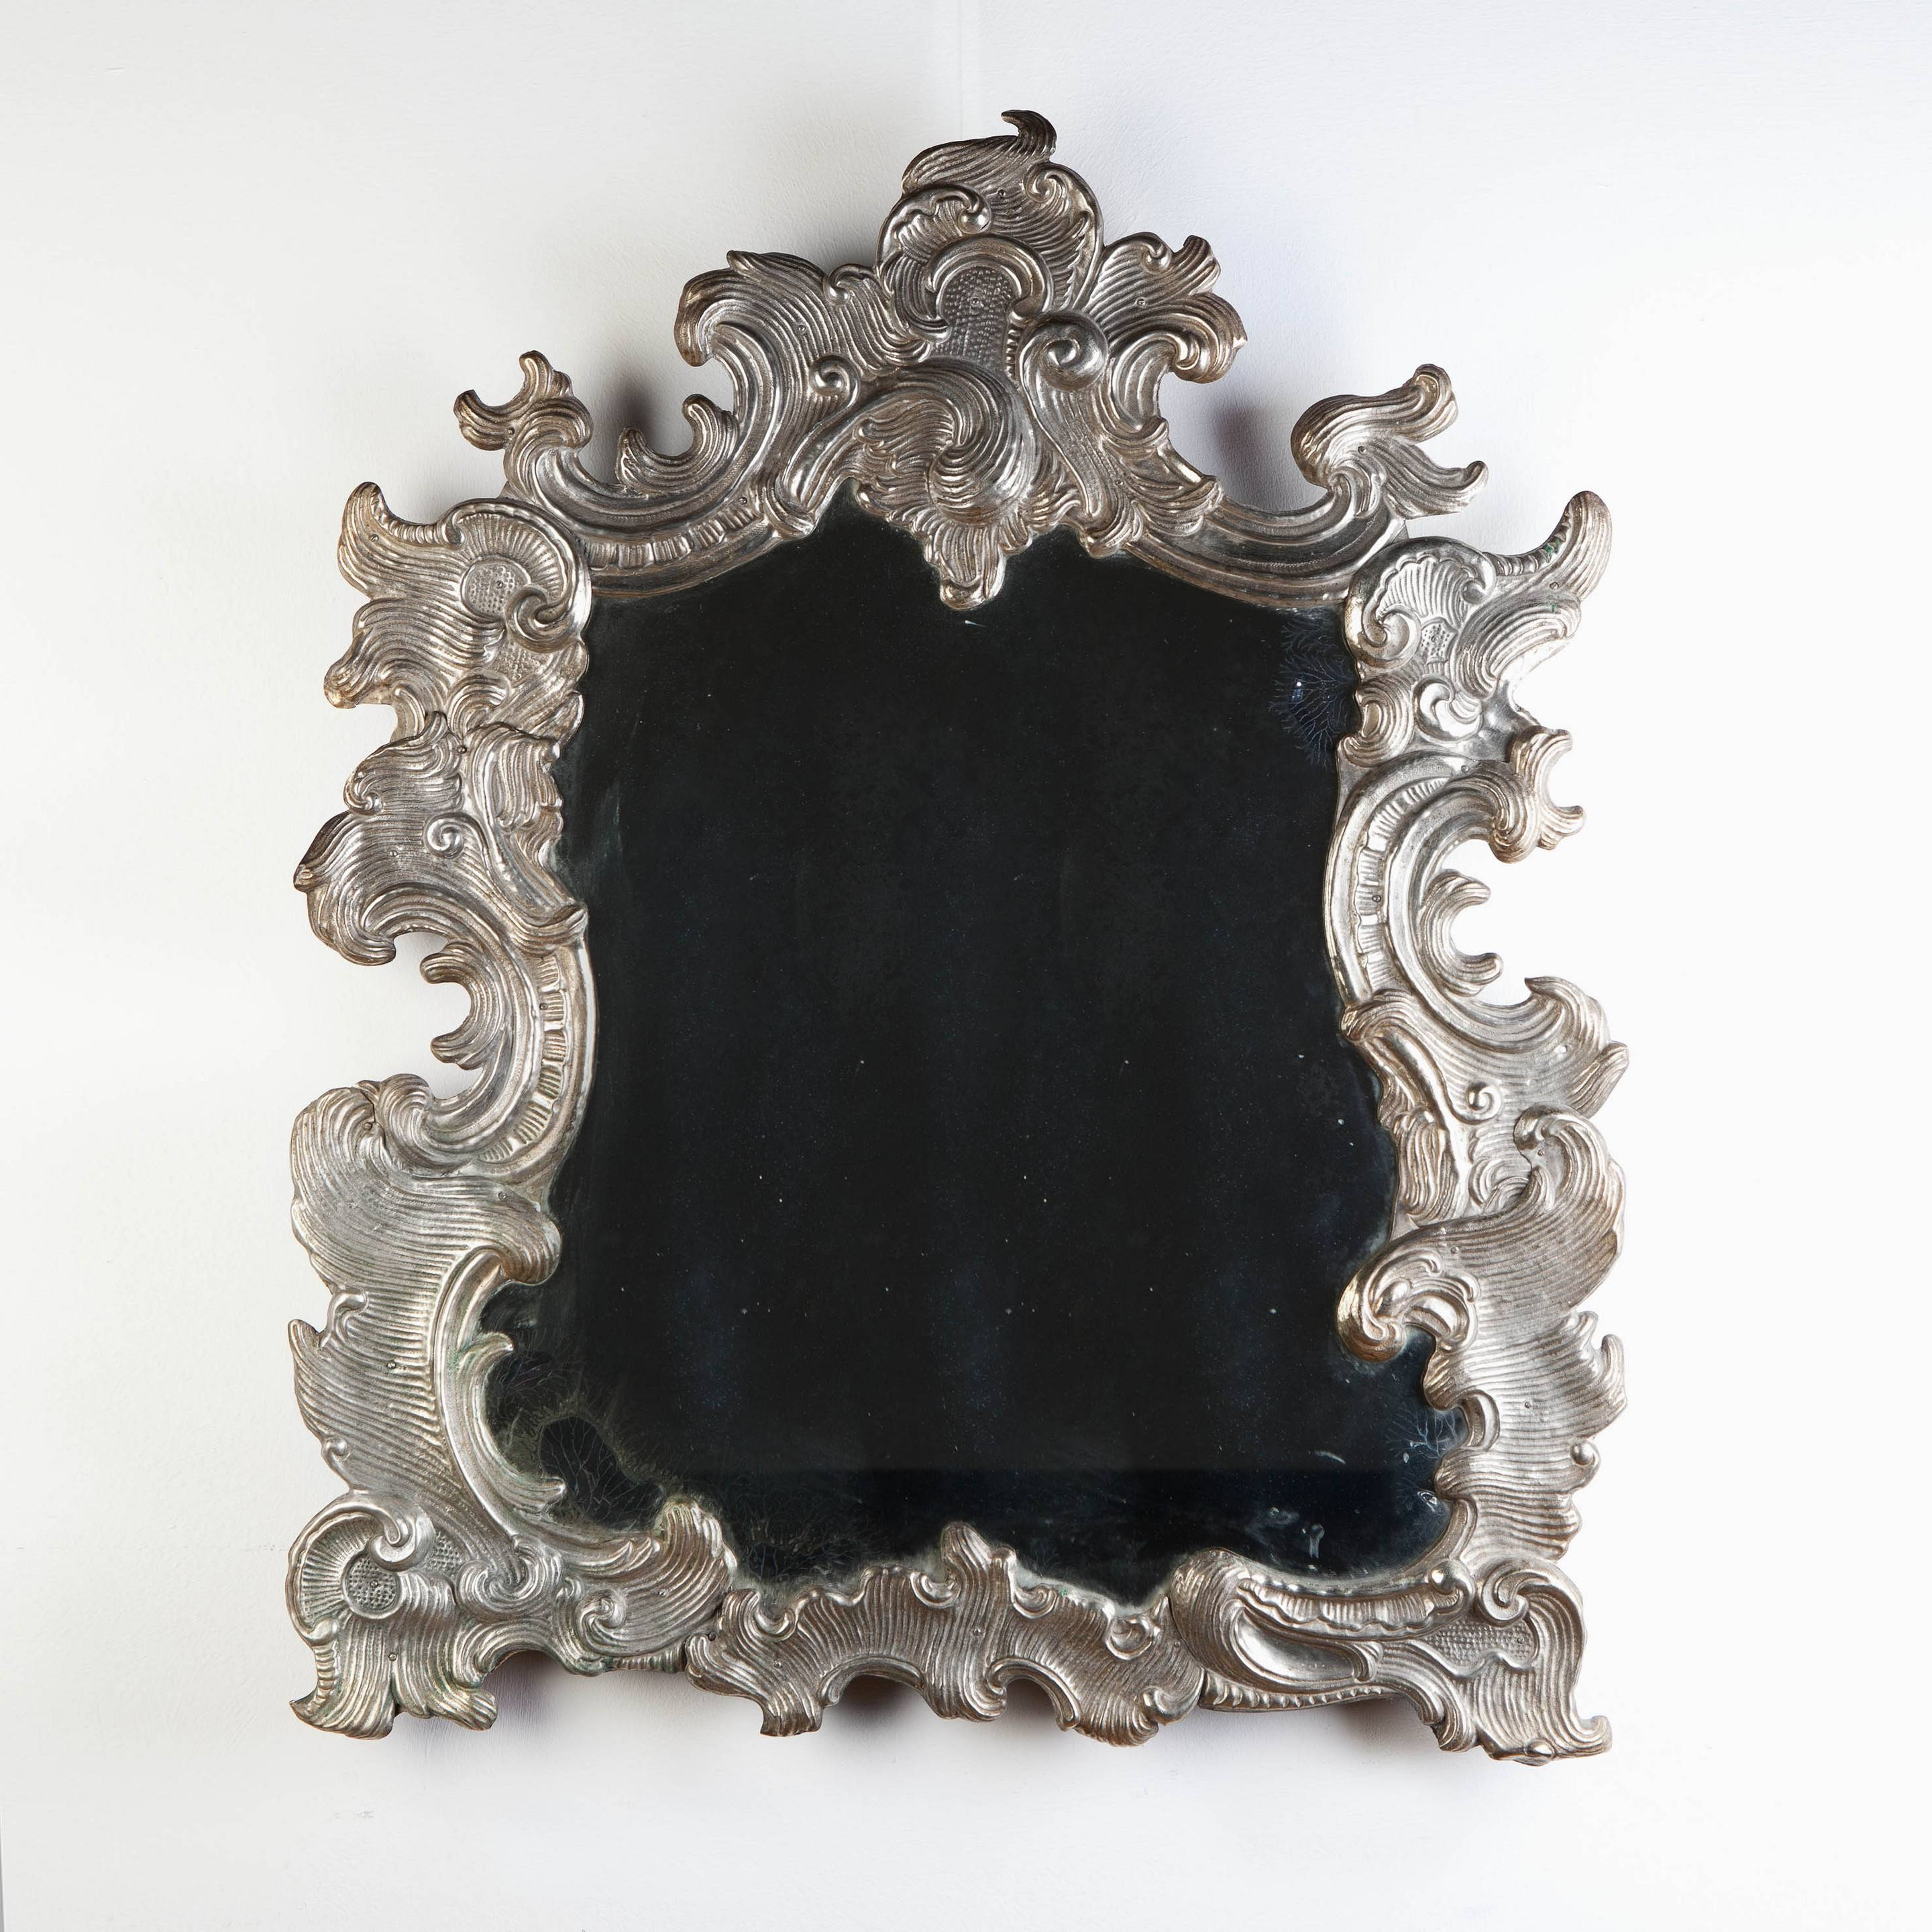 A Silvered Rococo Mirror (C. 1850 Italy) From Tarquin Bilgen - The pertaining to Rococo Mirrors (Image 7 of 25)